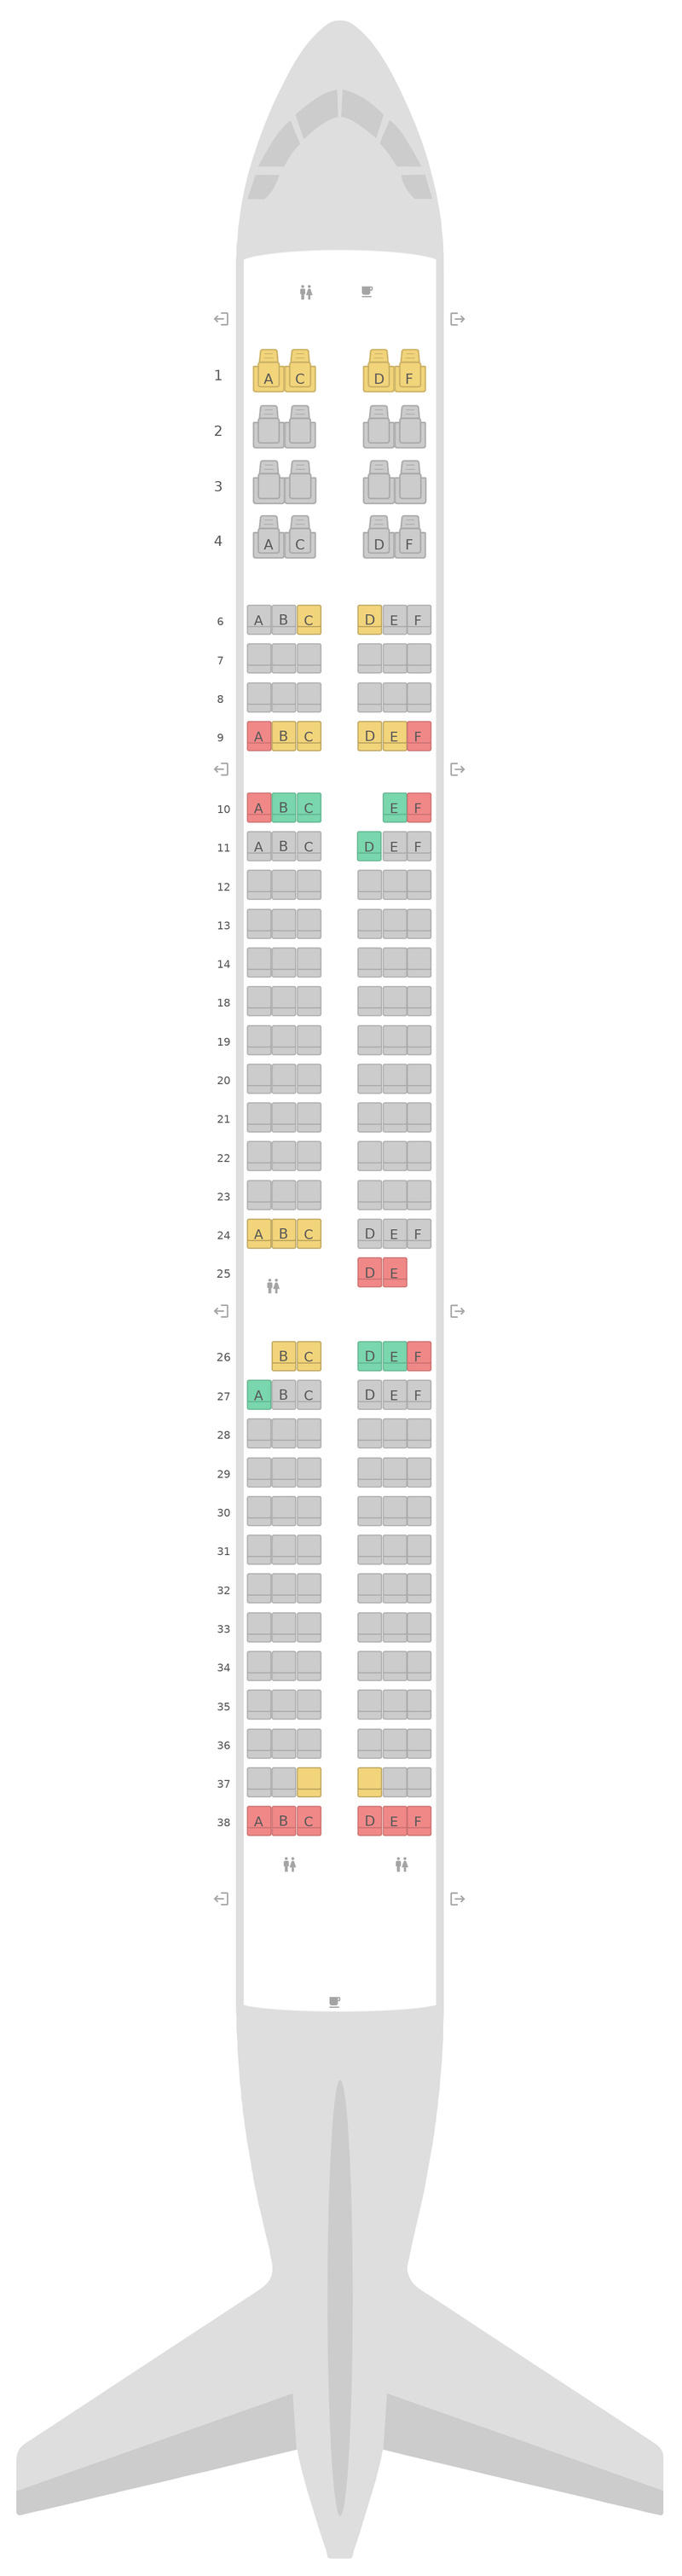 Seat Map Alaska Airlines Airbus A321neo v2